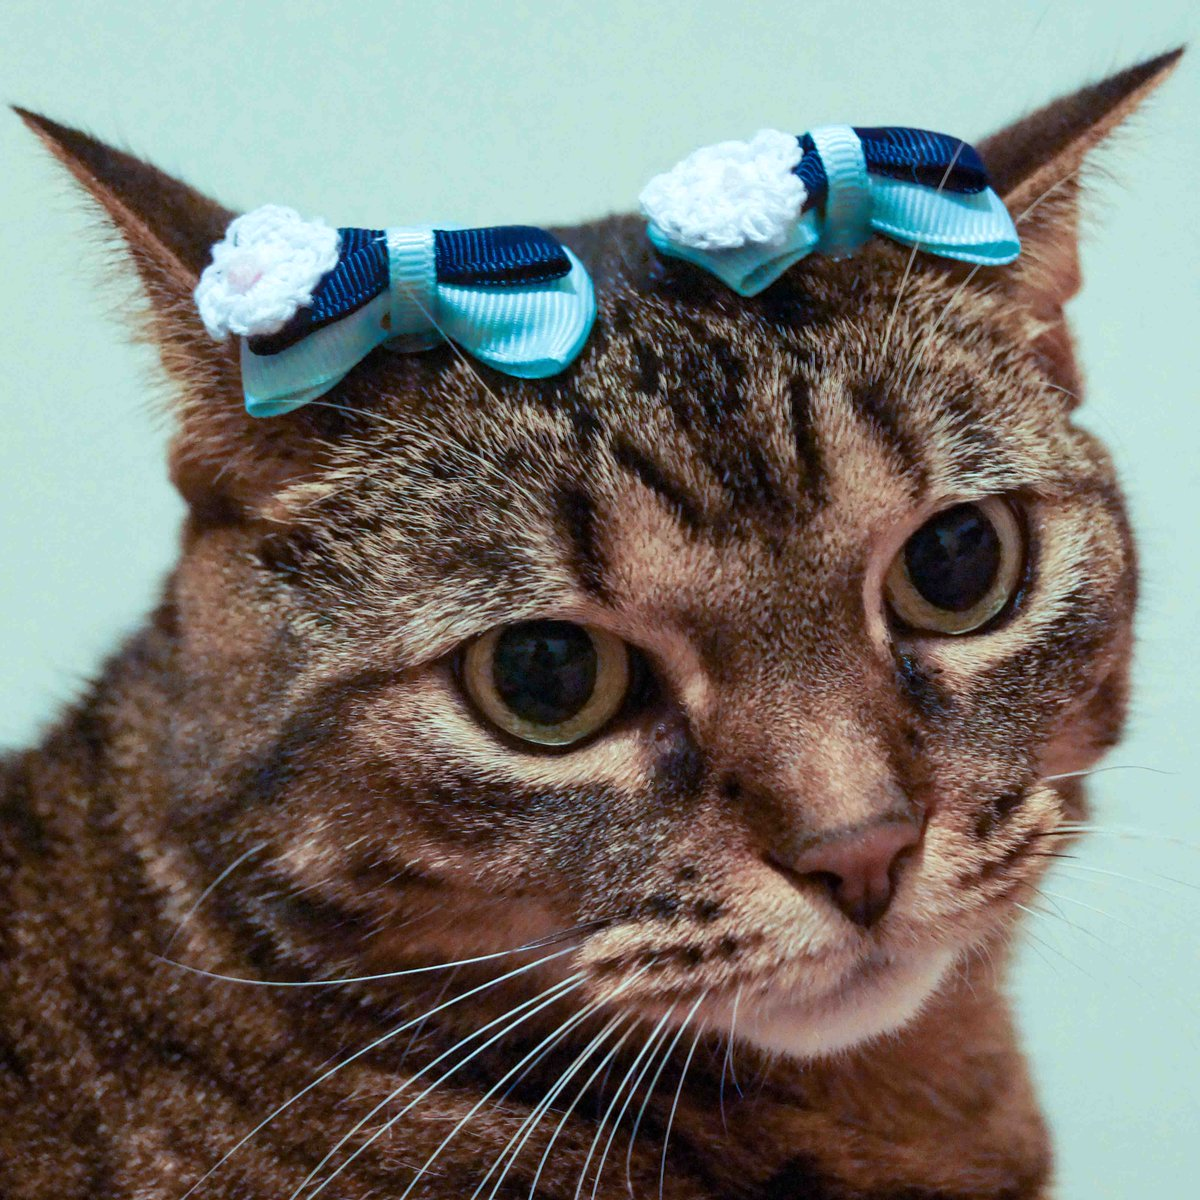 Amy Lee On Twitter 111 Angel Wearing Two Blue Bows Angel Cat Kitty Kittycat Bows Blue Baby Babygirl Girl Beautiful Pretty Lovely Elegant Nice Sweet Accessory Precious Cute Dear Innocent Adorable Beautifulgirl